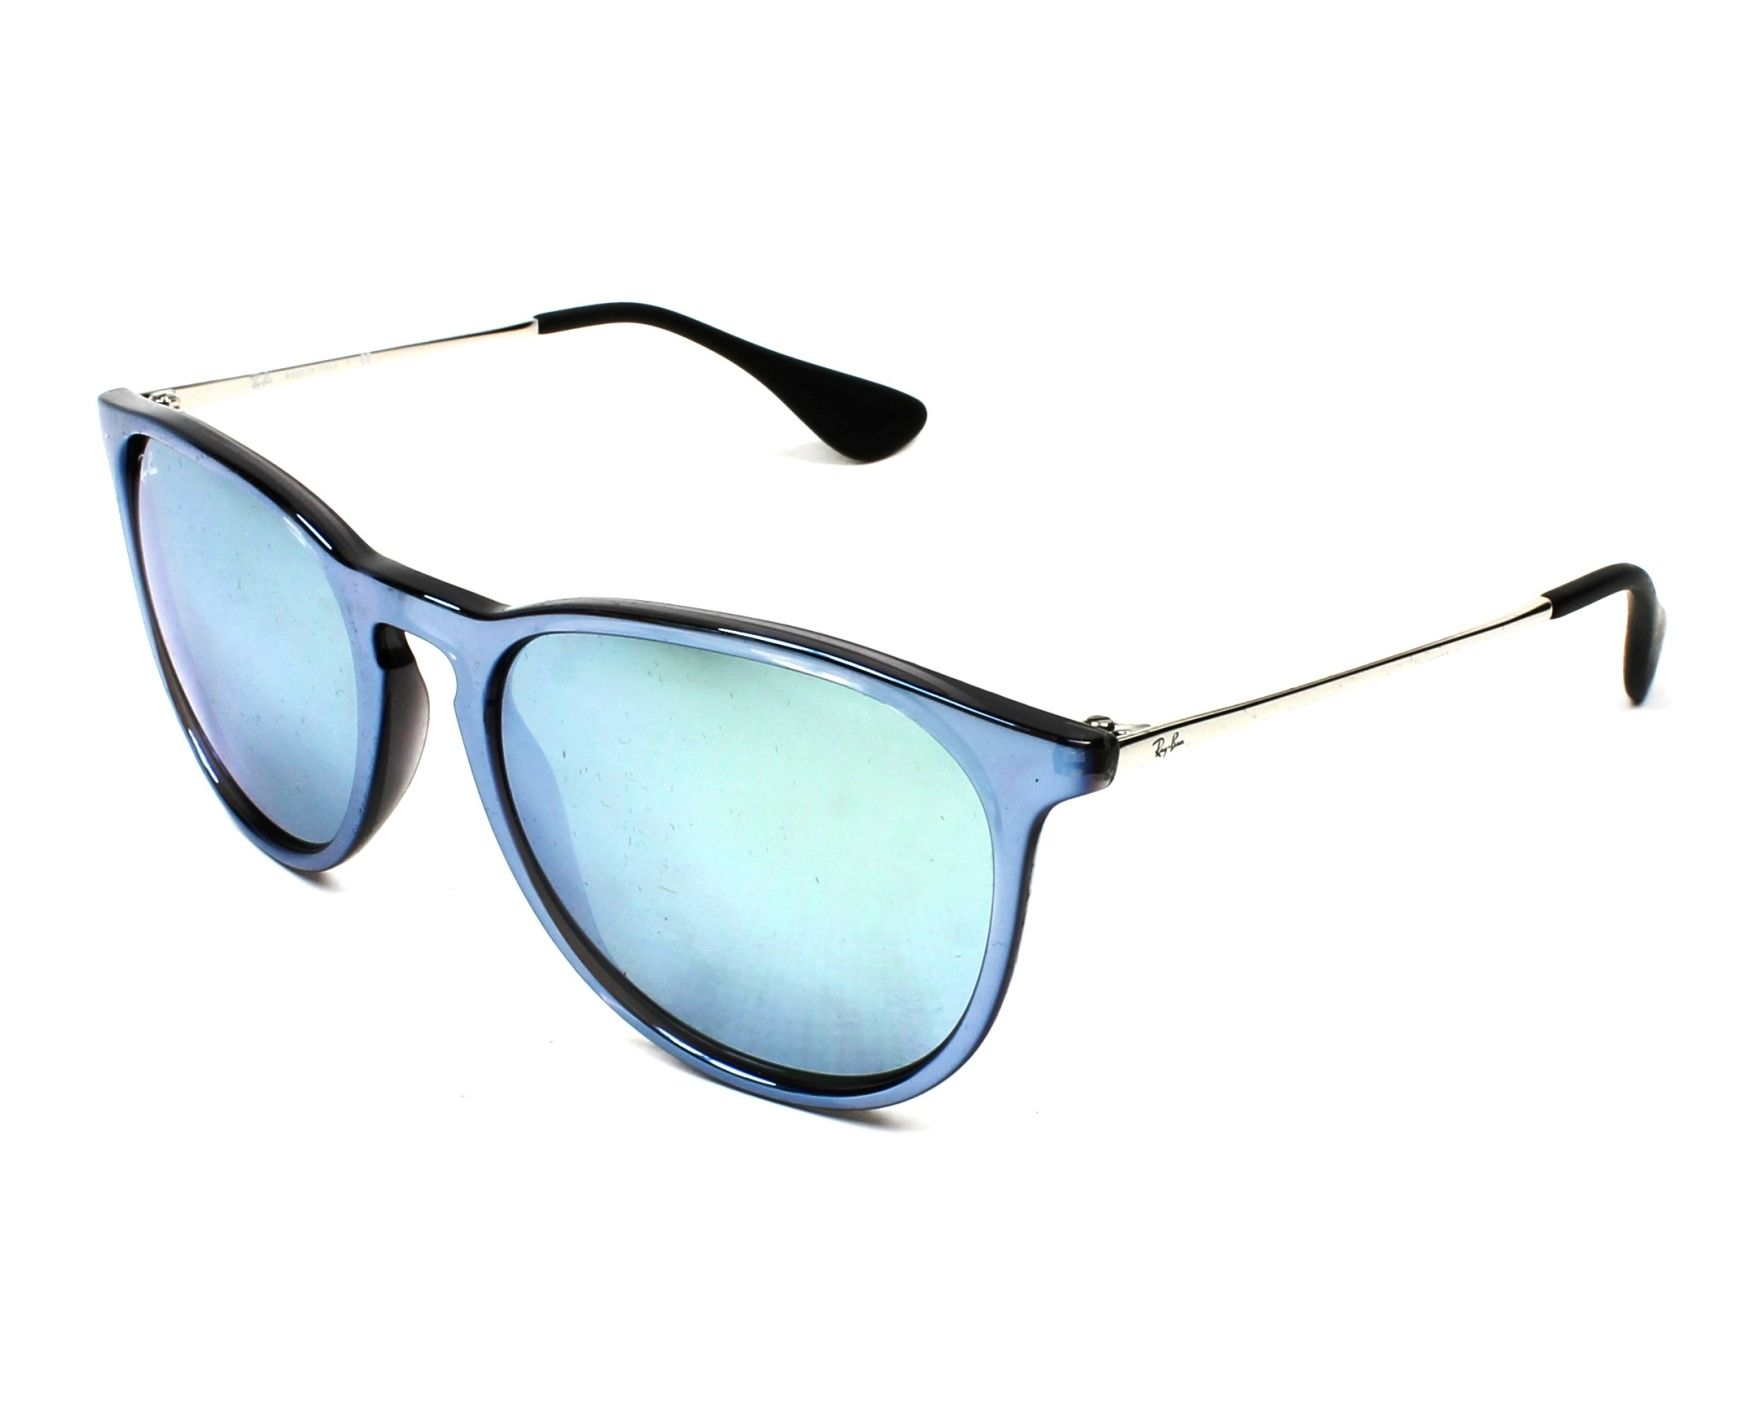 5946fd13bc1 Sunglasses Ray-Ban RB-4171 631930 54-17 Blue Silver profile view